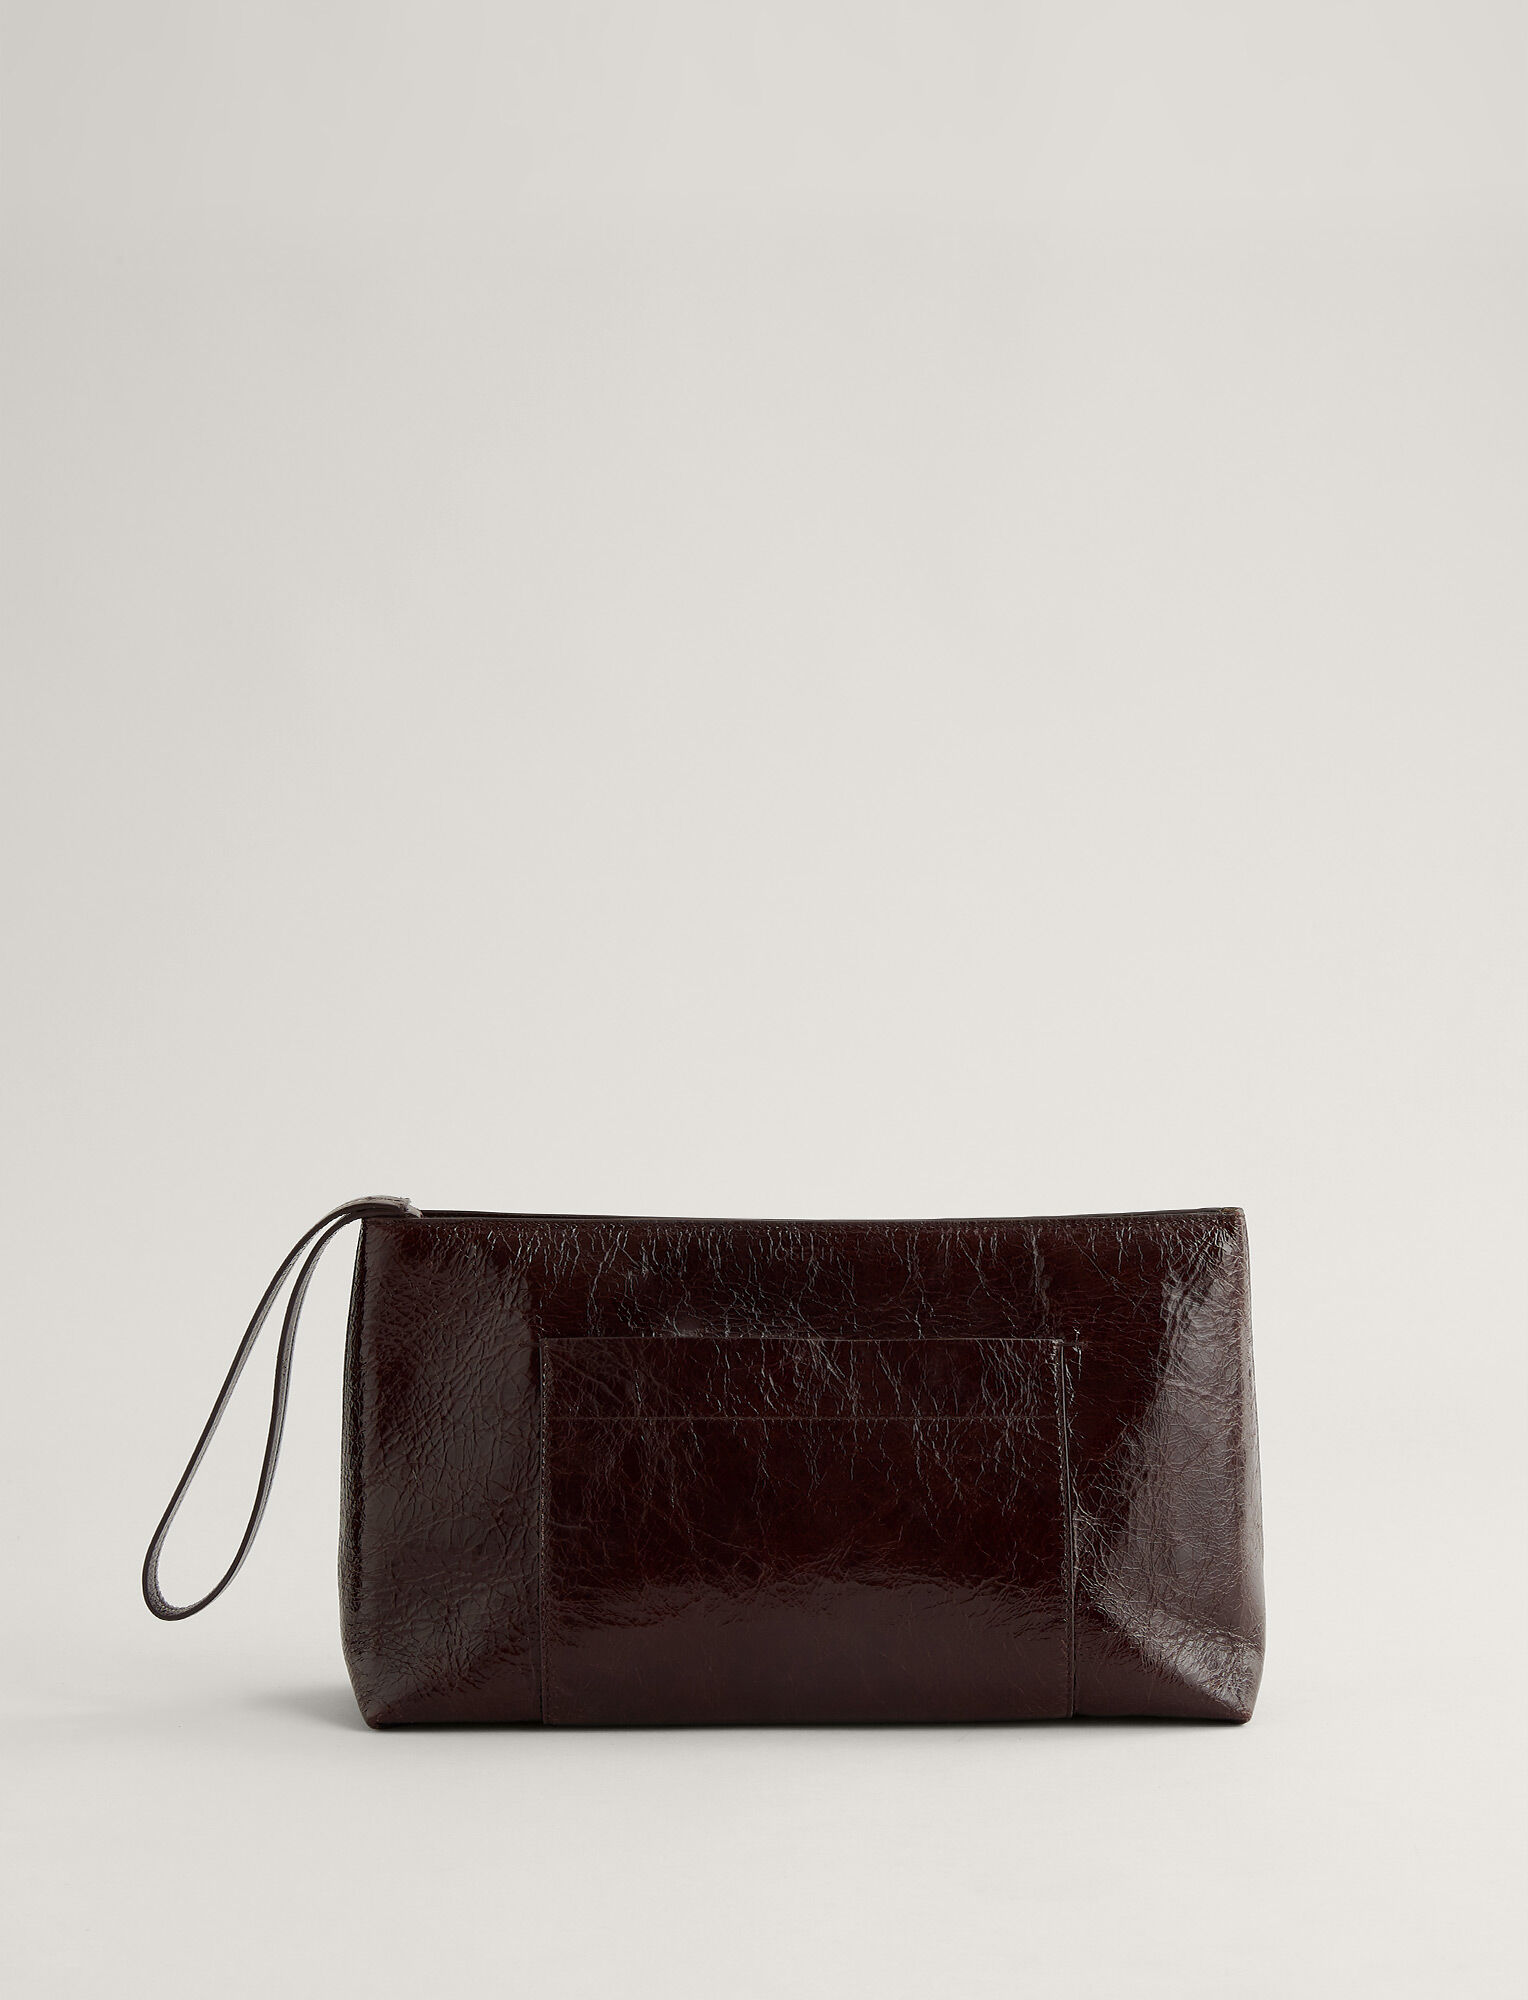 Joseph, Westbourne Clutch Leather Bag, in MAHOGANY